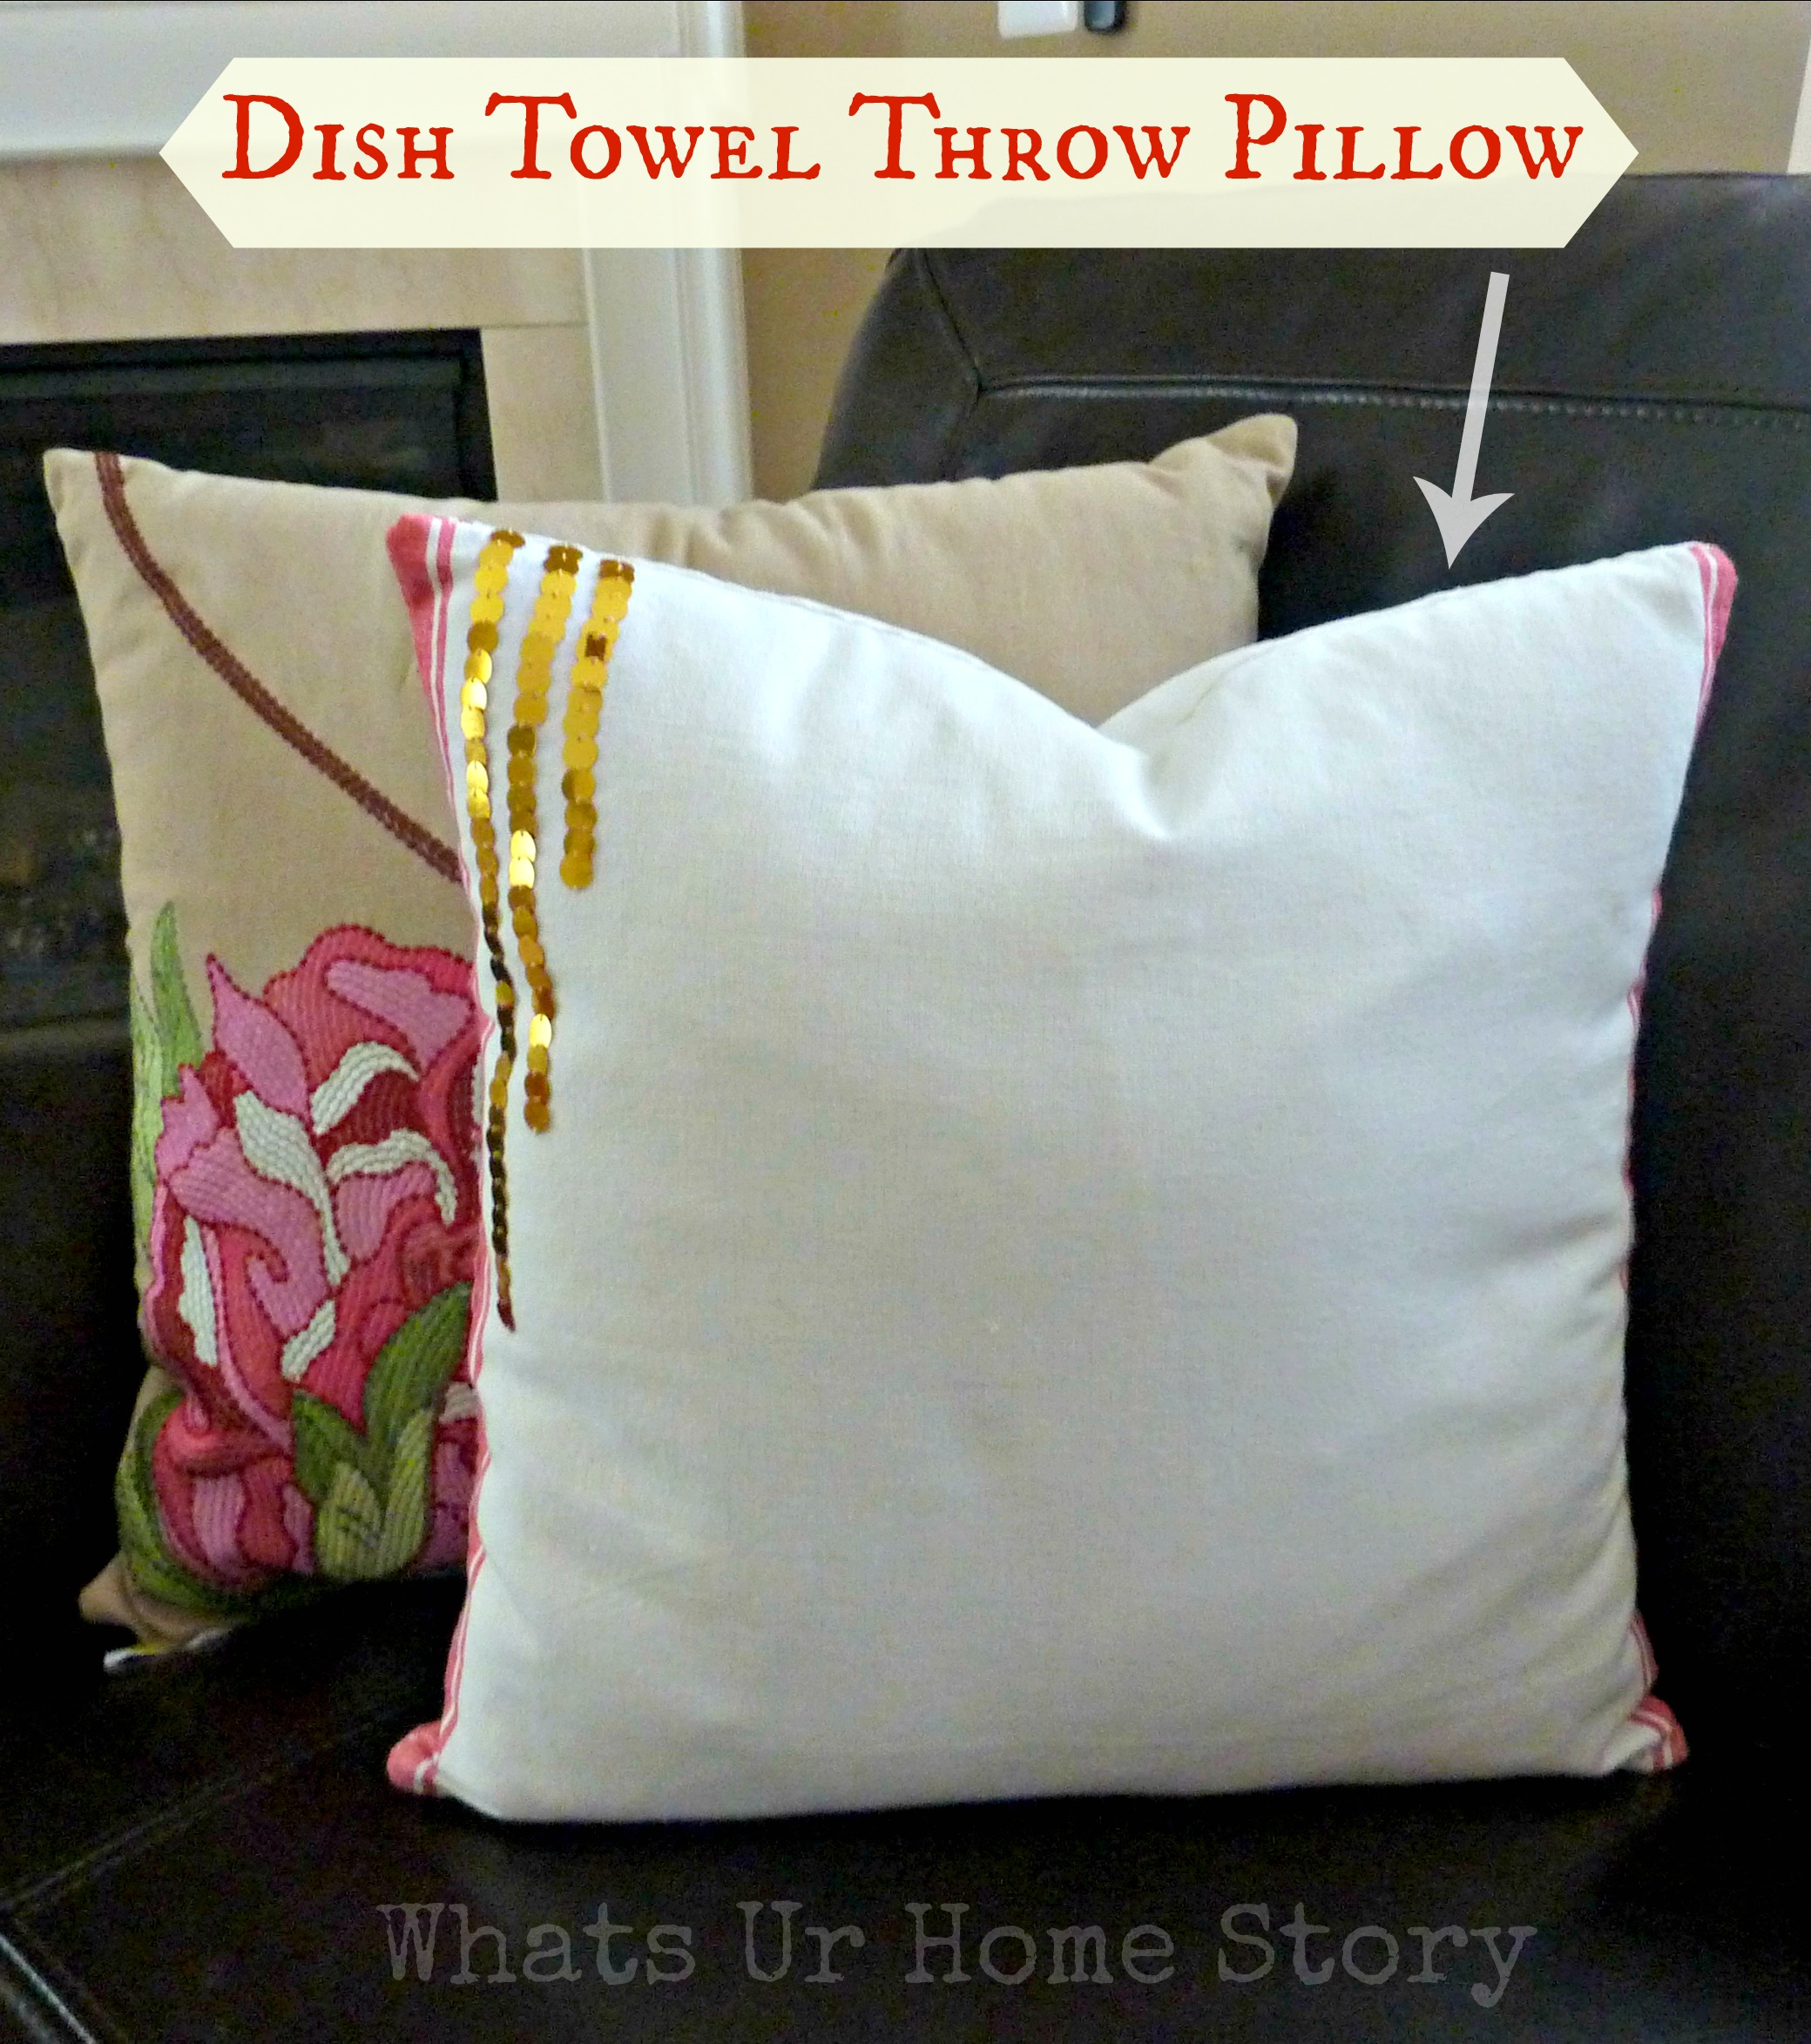 Dish-Towel-Throw-Pillow, Pottery-Barn-knockoff-pillow, DIY-throw-pillow